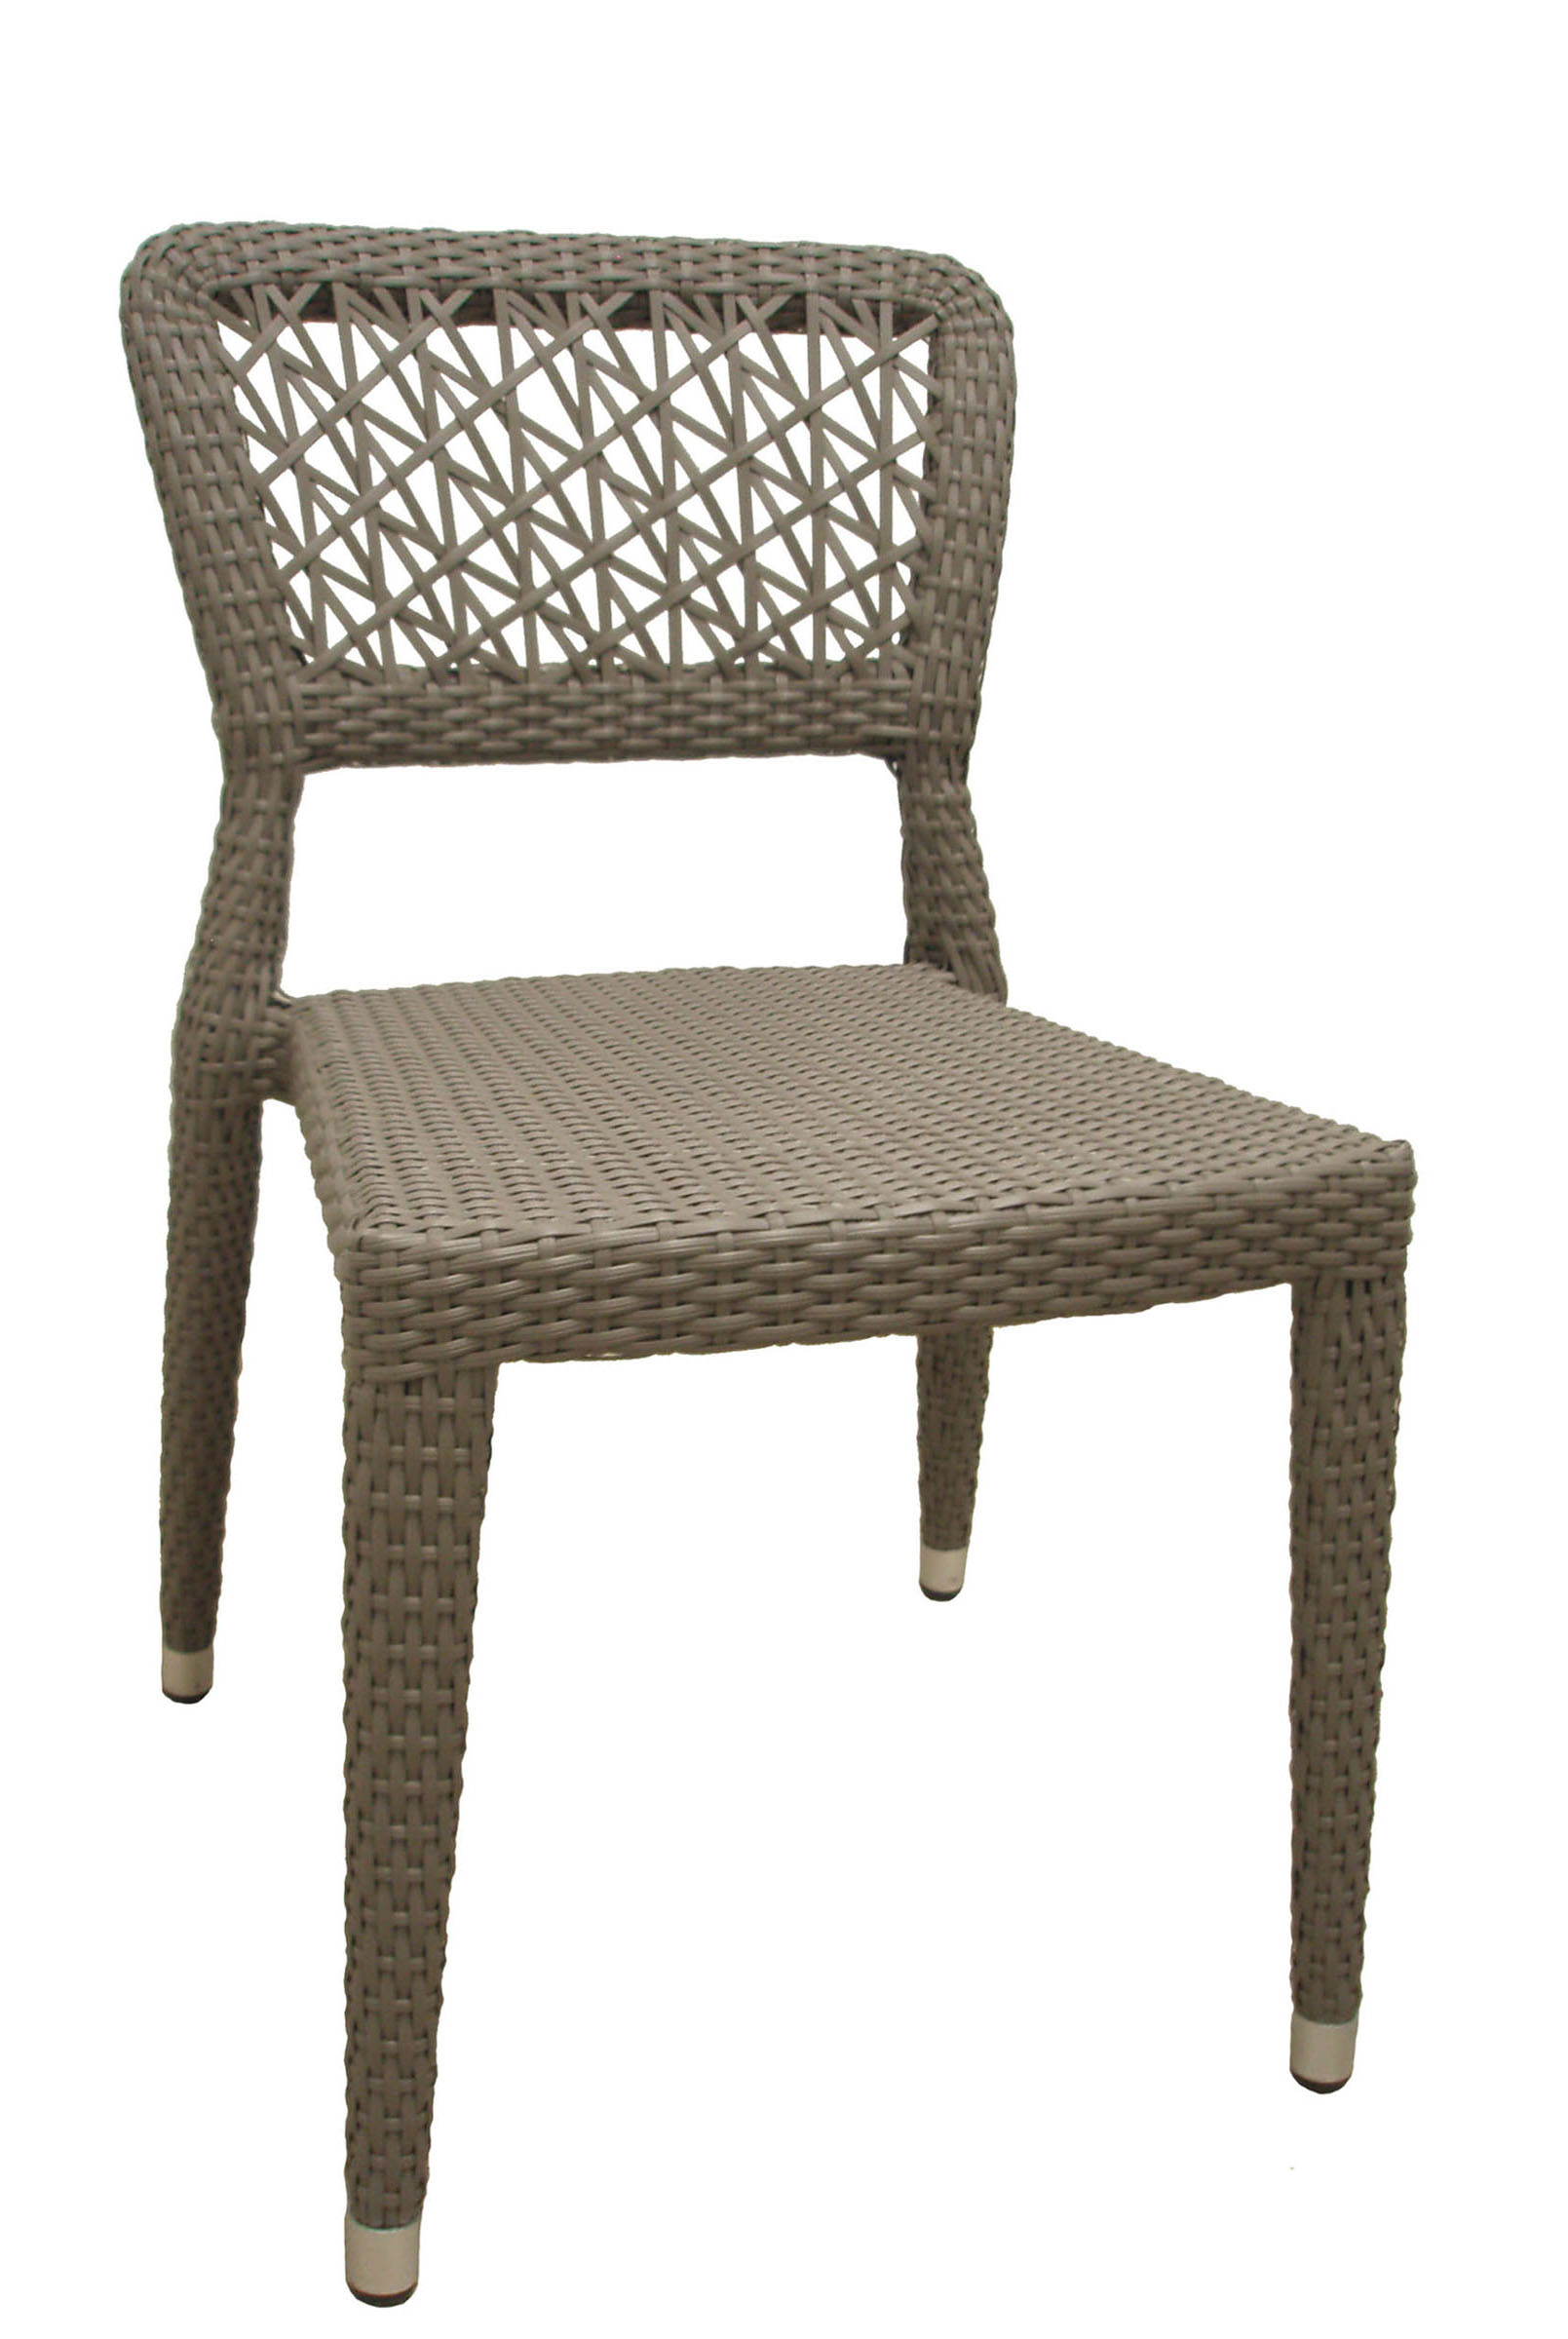 AL-5699-01-R OSAKA SIDECHAIR GREY REEDED